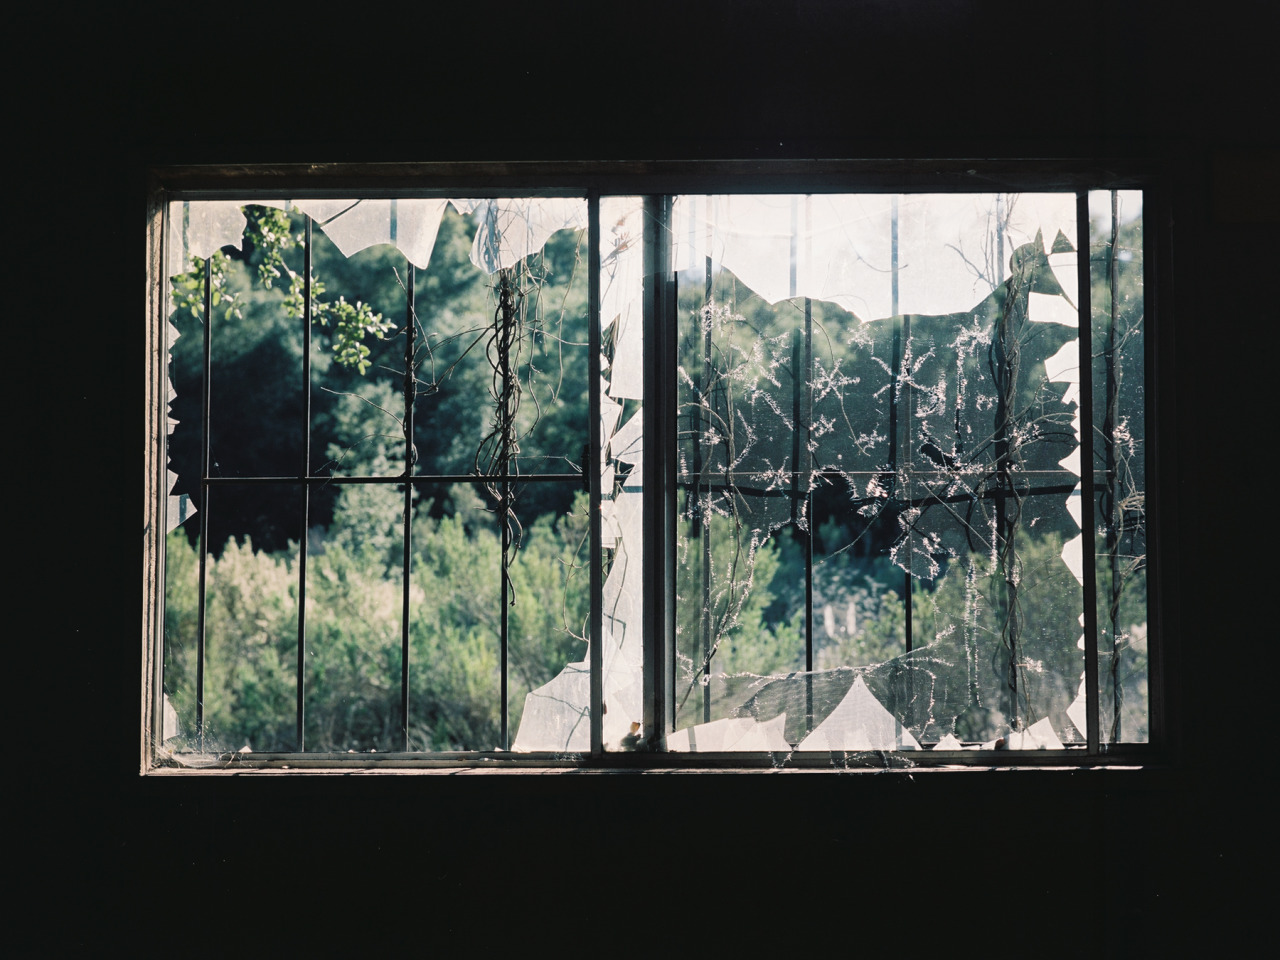 neithernor:  window treatment, California, 2013